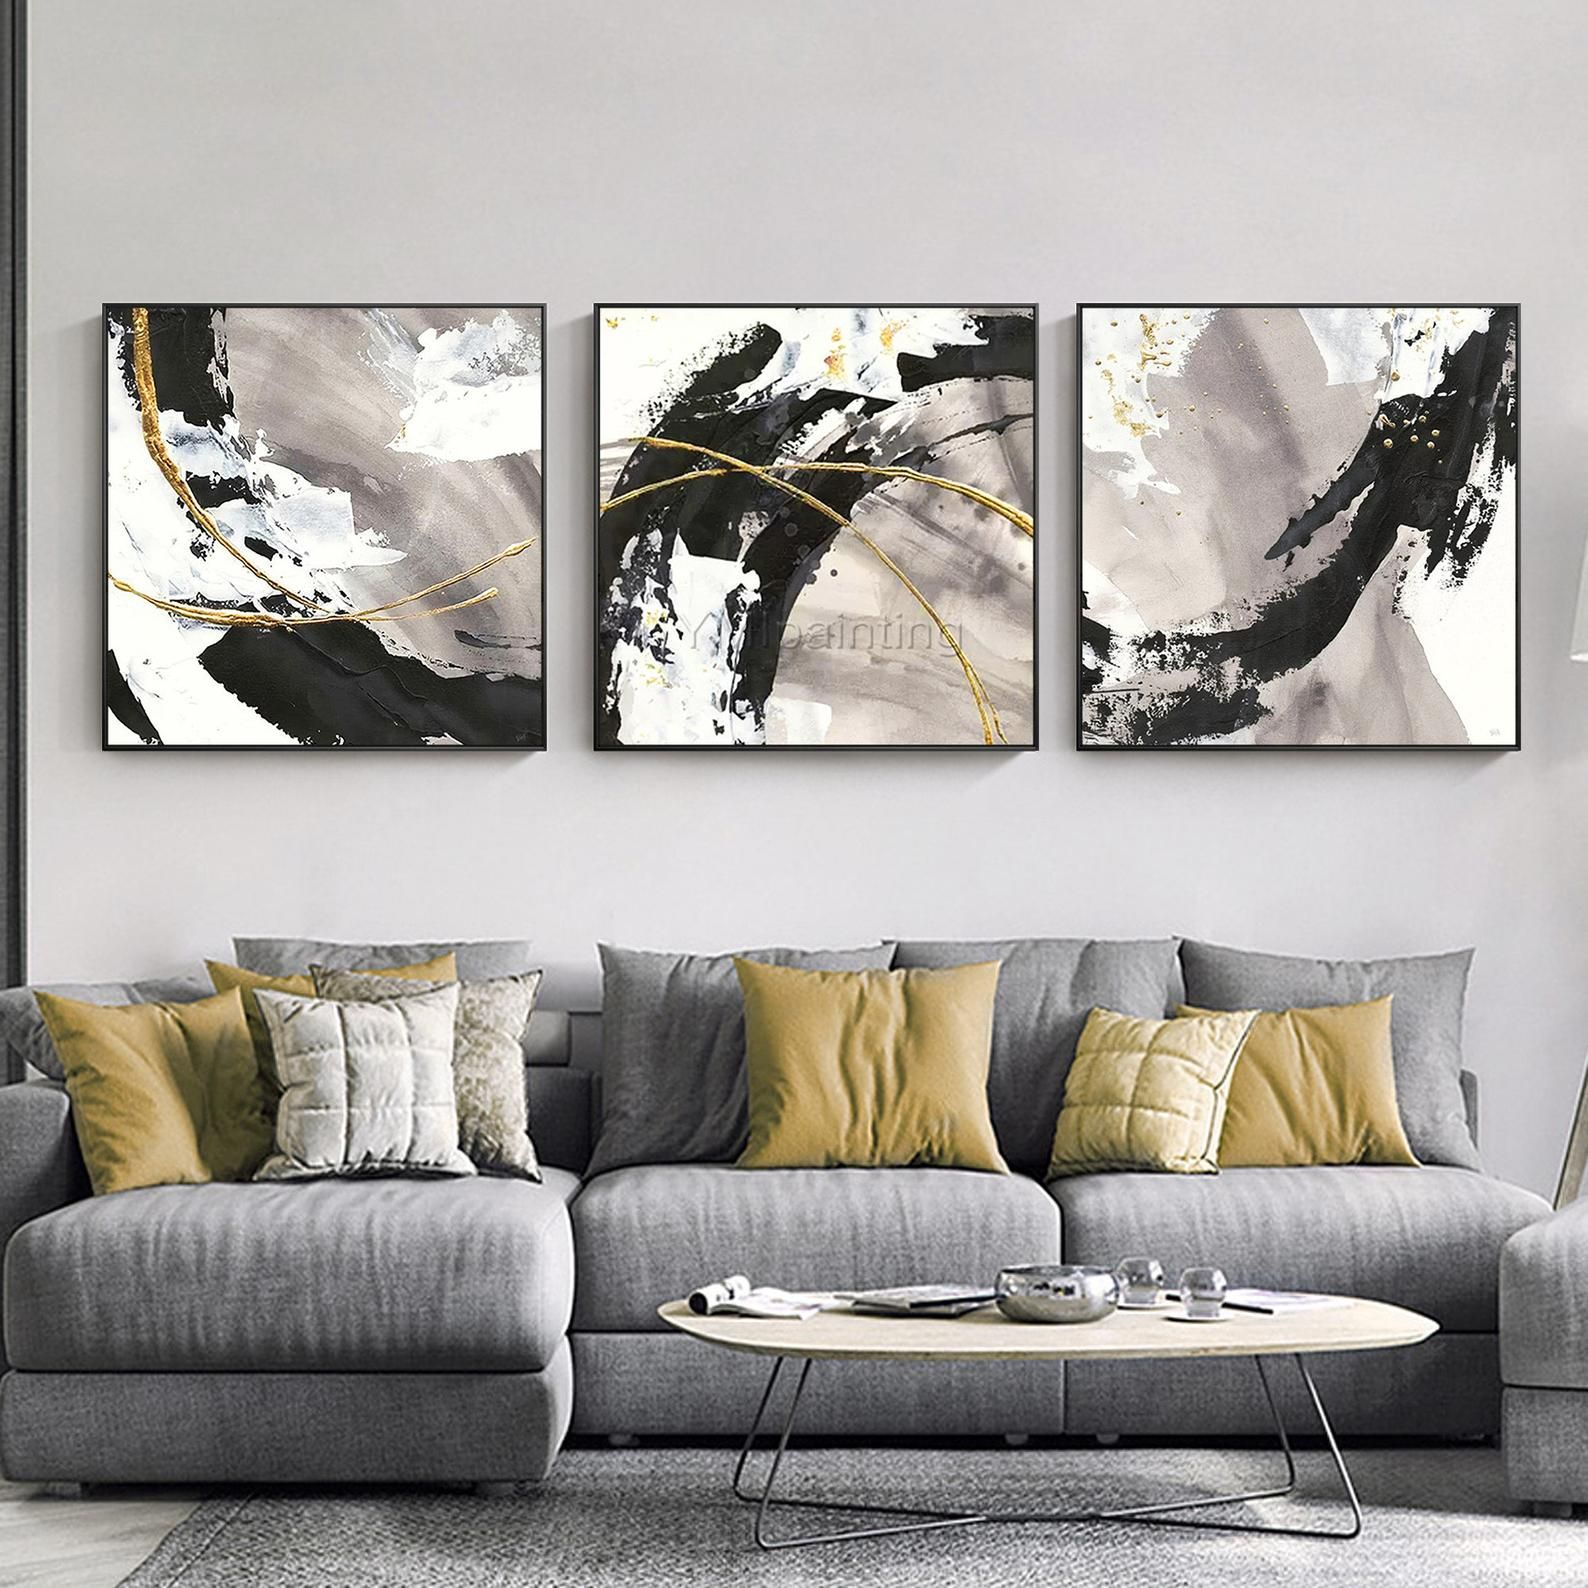 3 pieces gold art abstract paintings on canvas set of 3